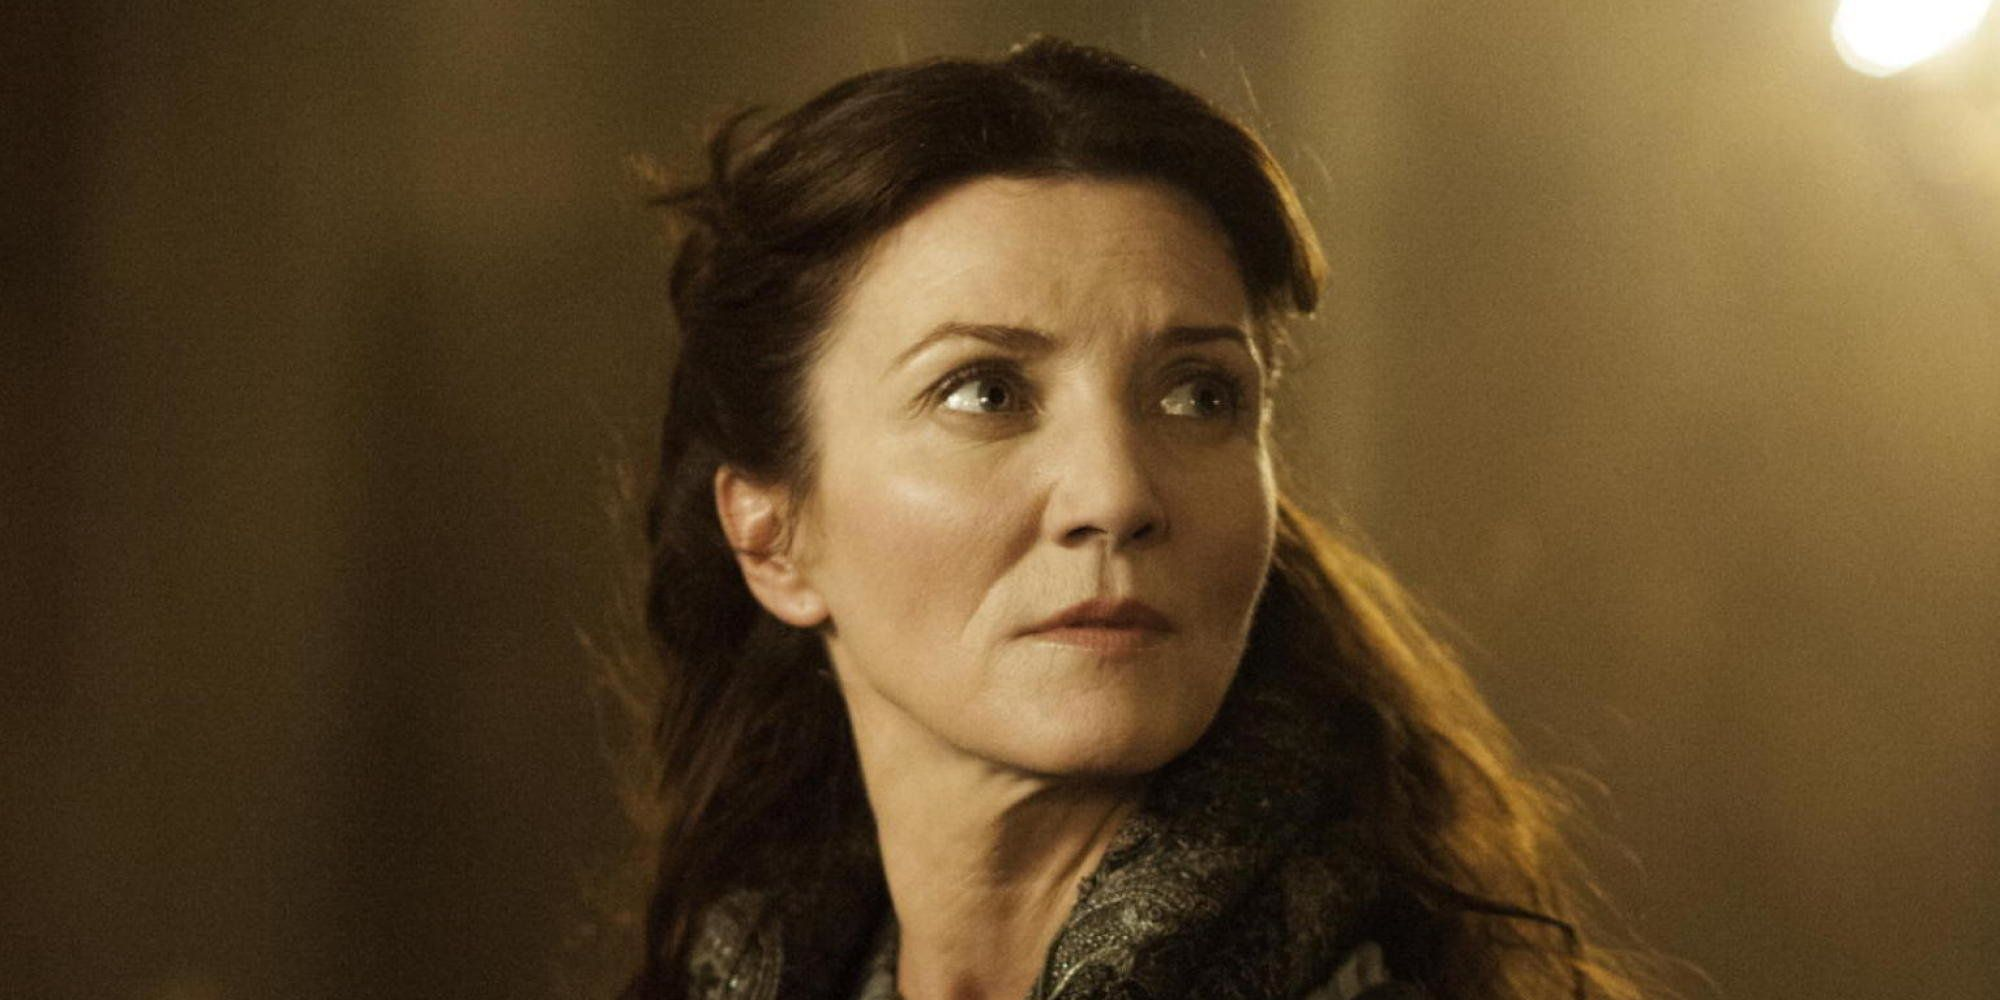 Michelle Fairley as Lady Catelyn Stark.